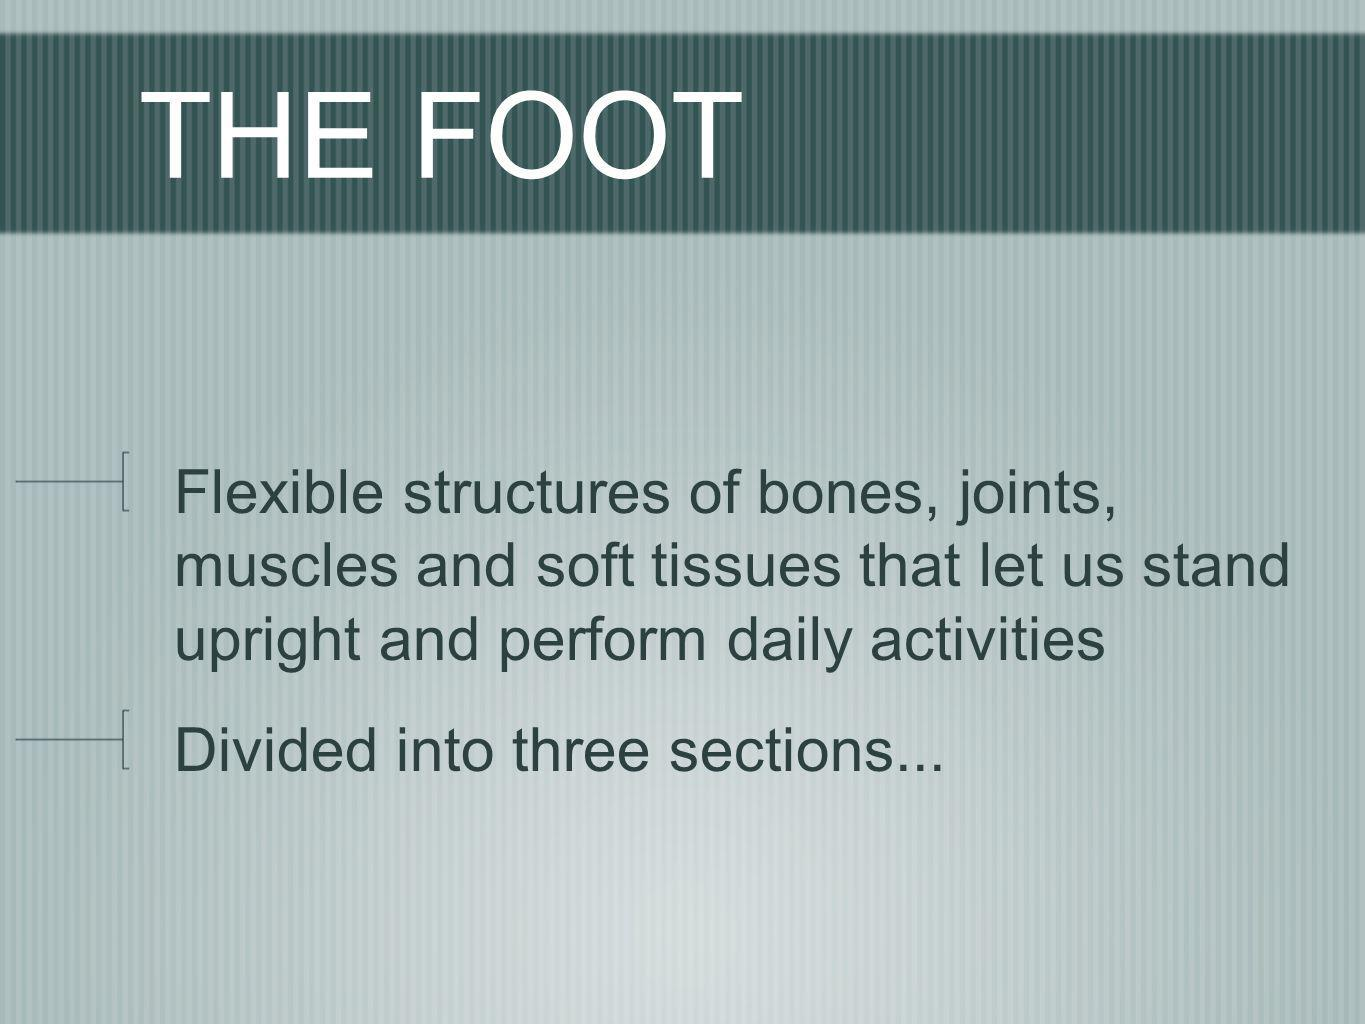 THE FOOT Flexible structures of bones, joints, muscles and soft tissues that let us stand upright and perform daily activities.